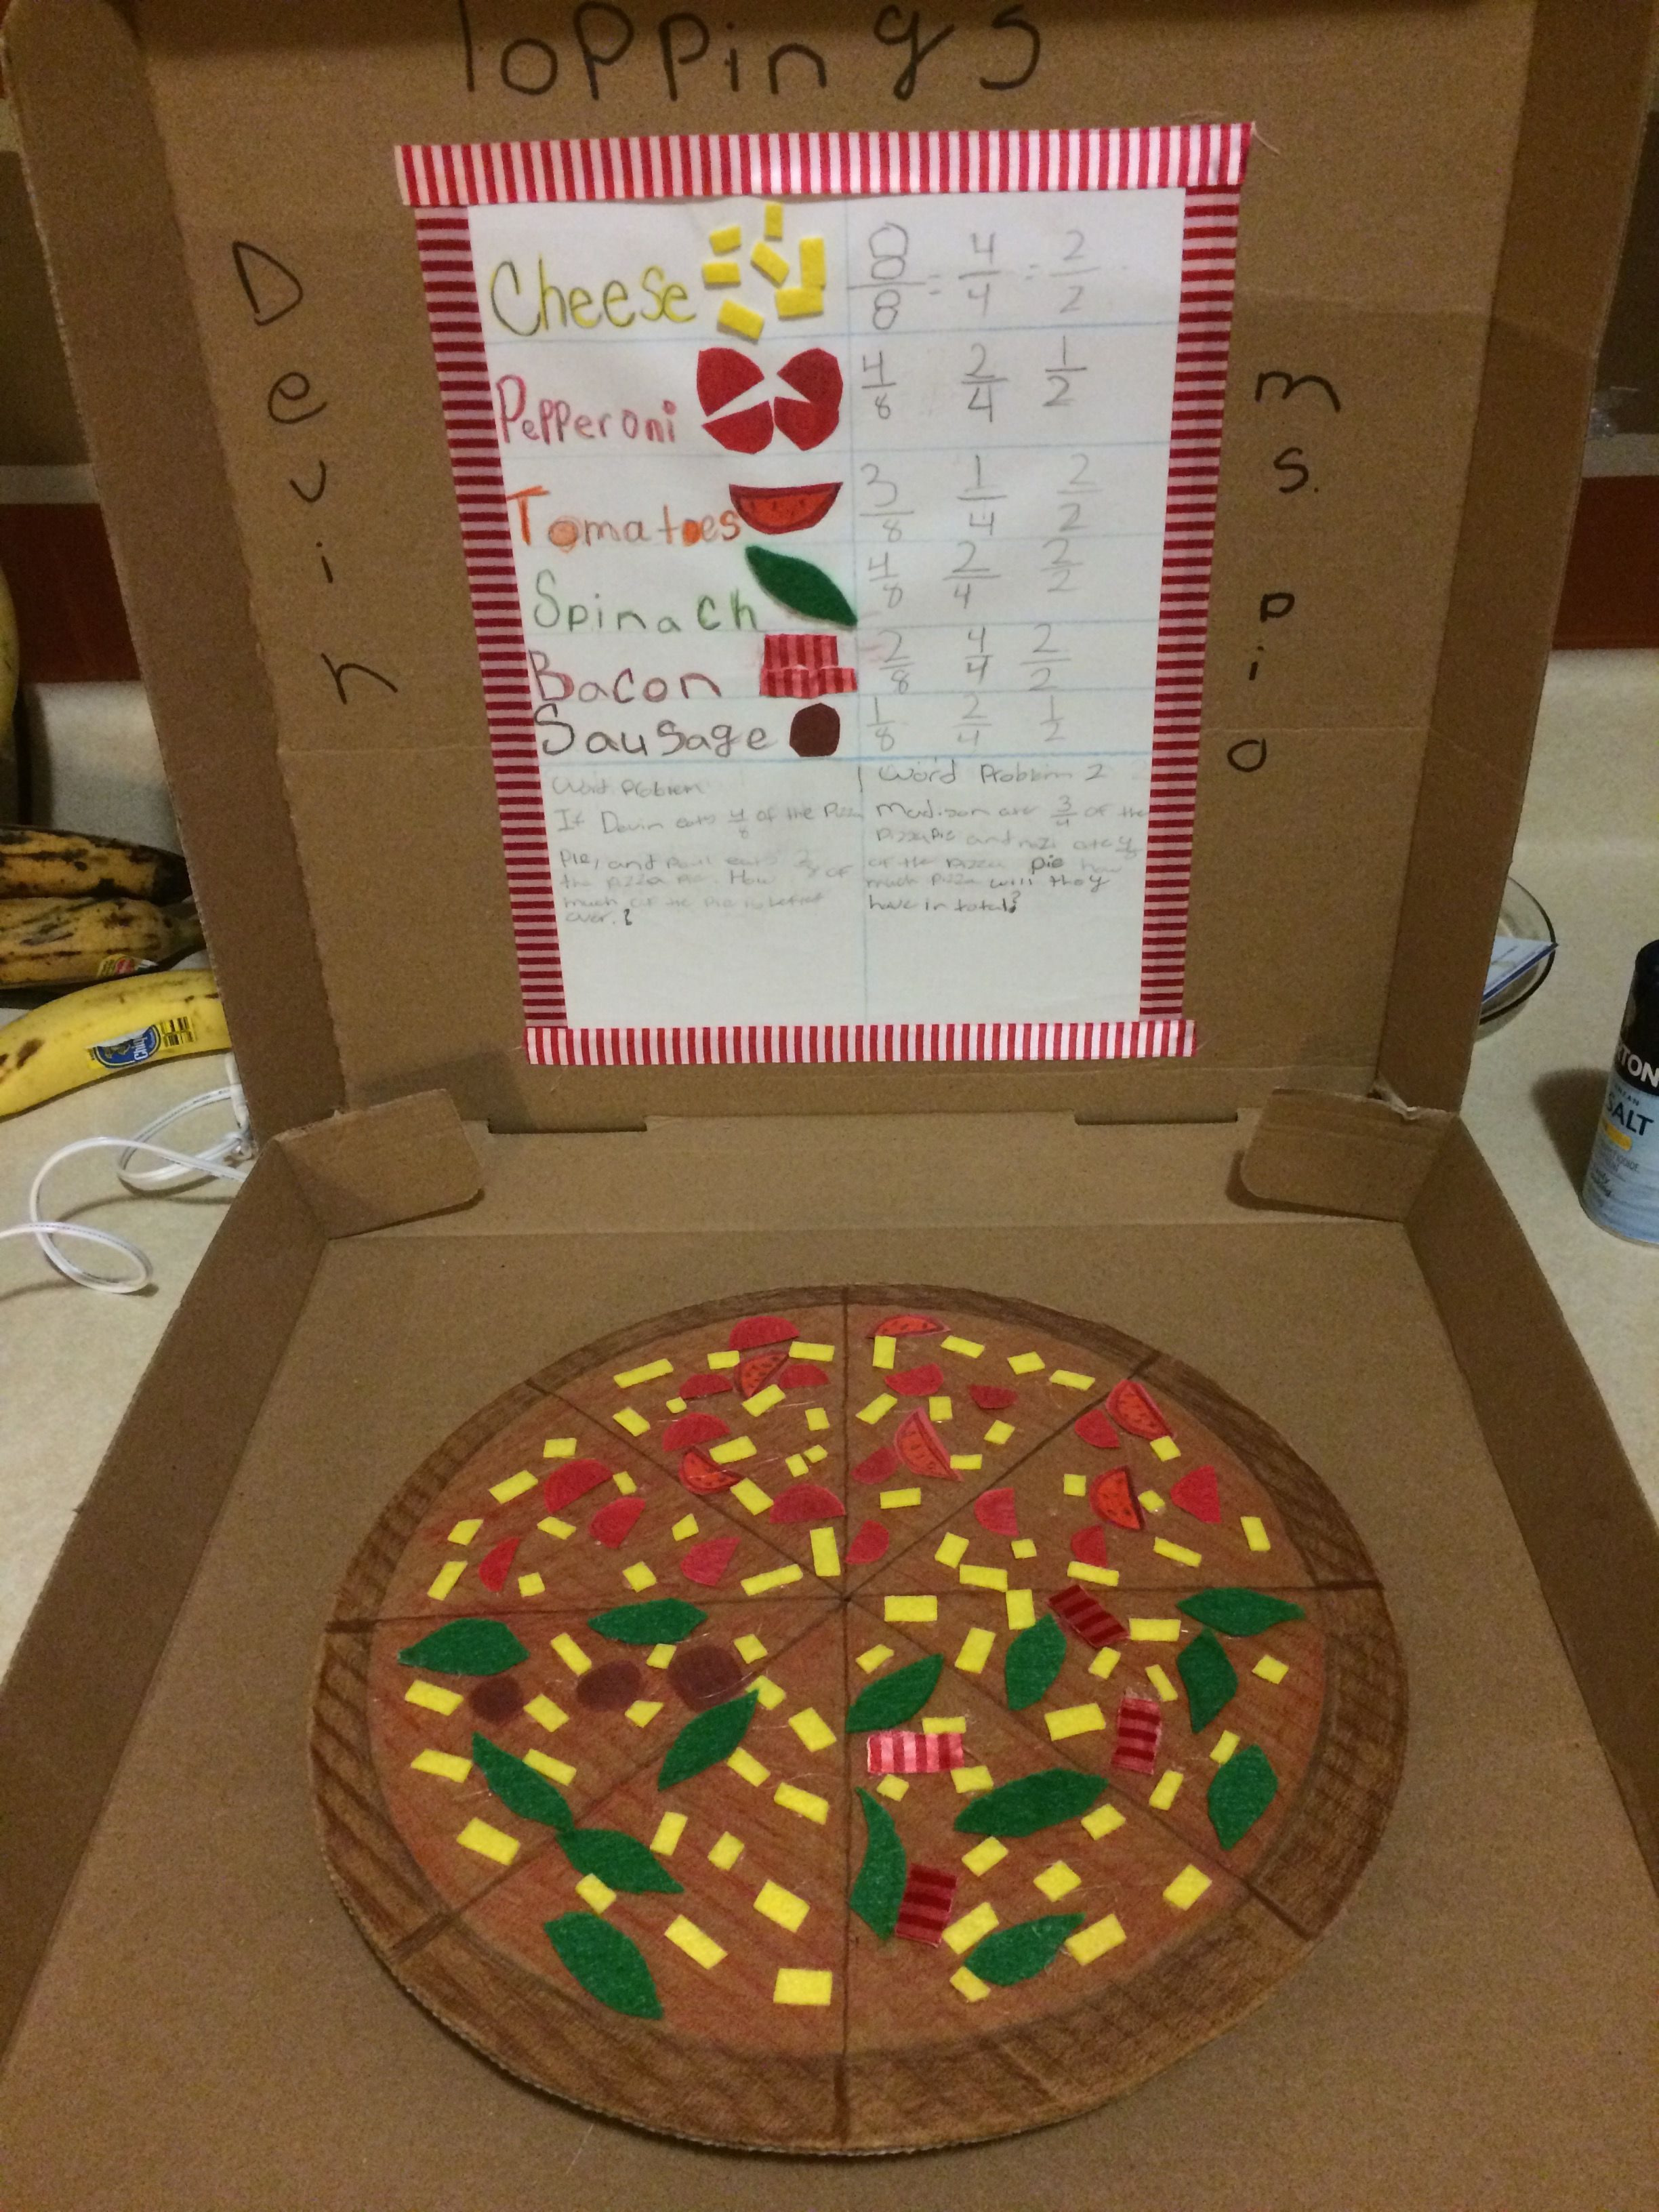 Our Pizza Fraction Project